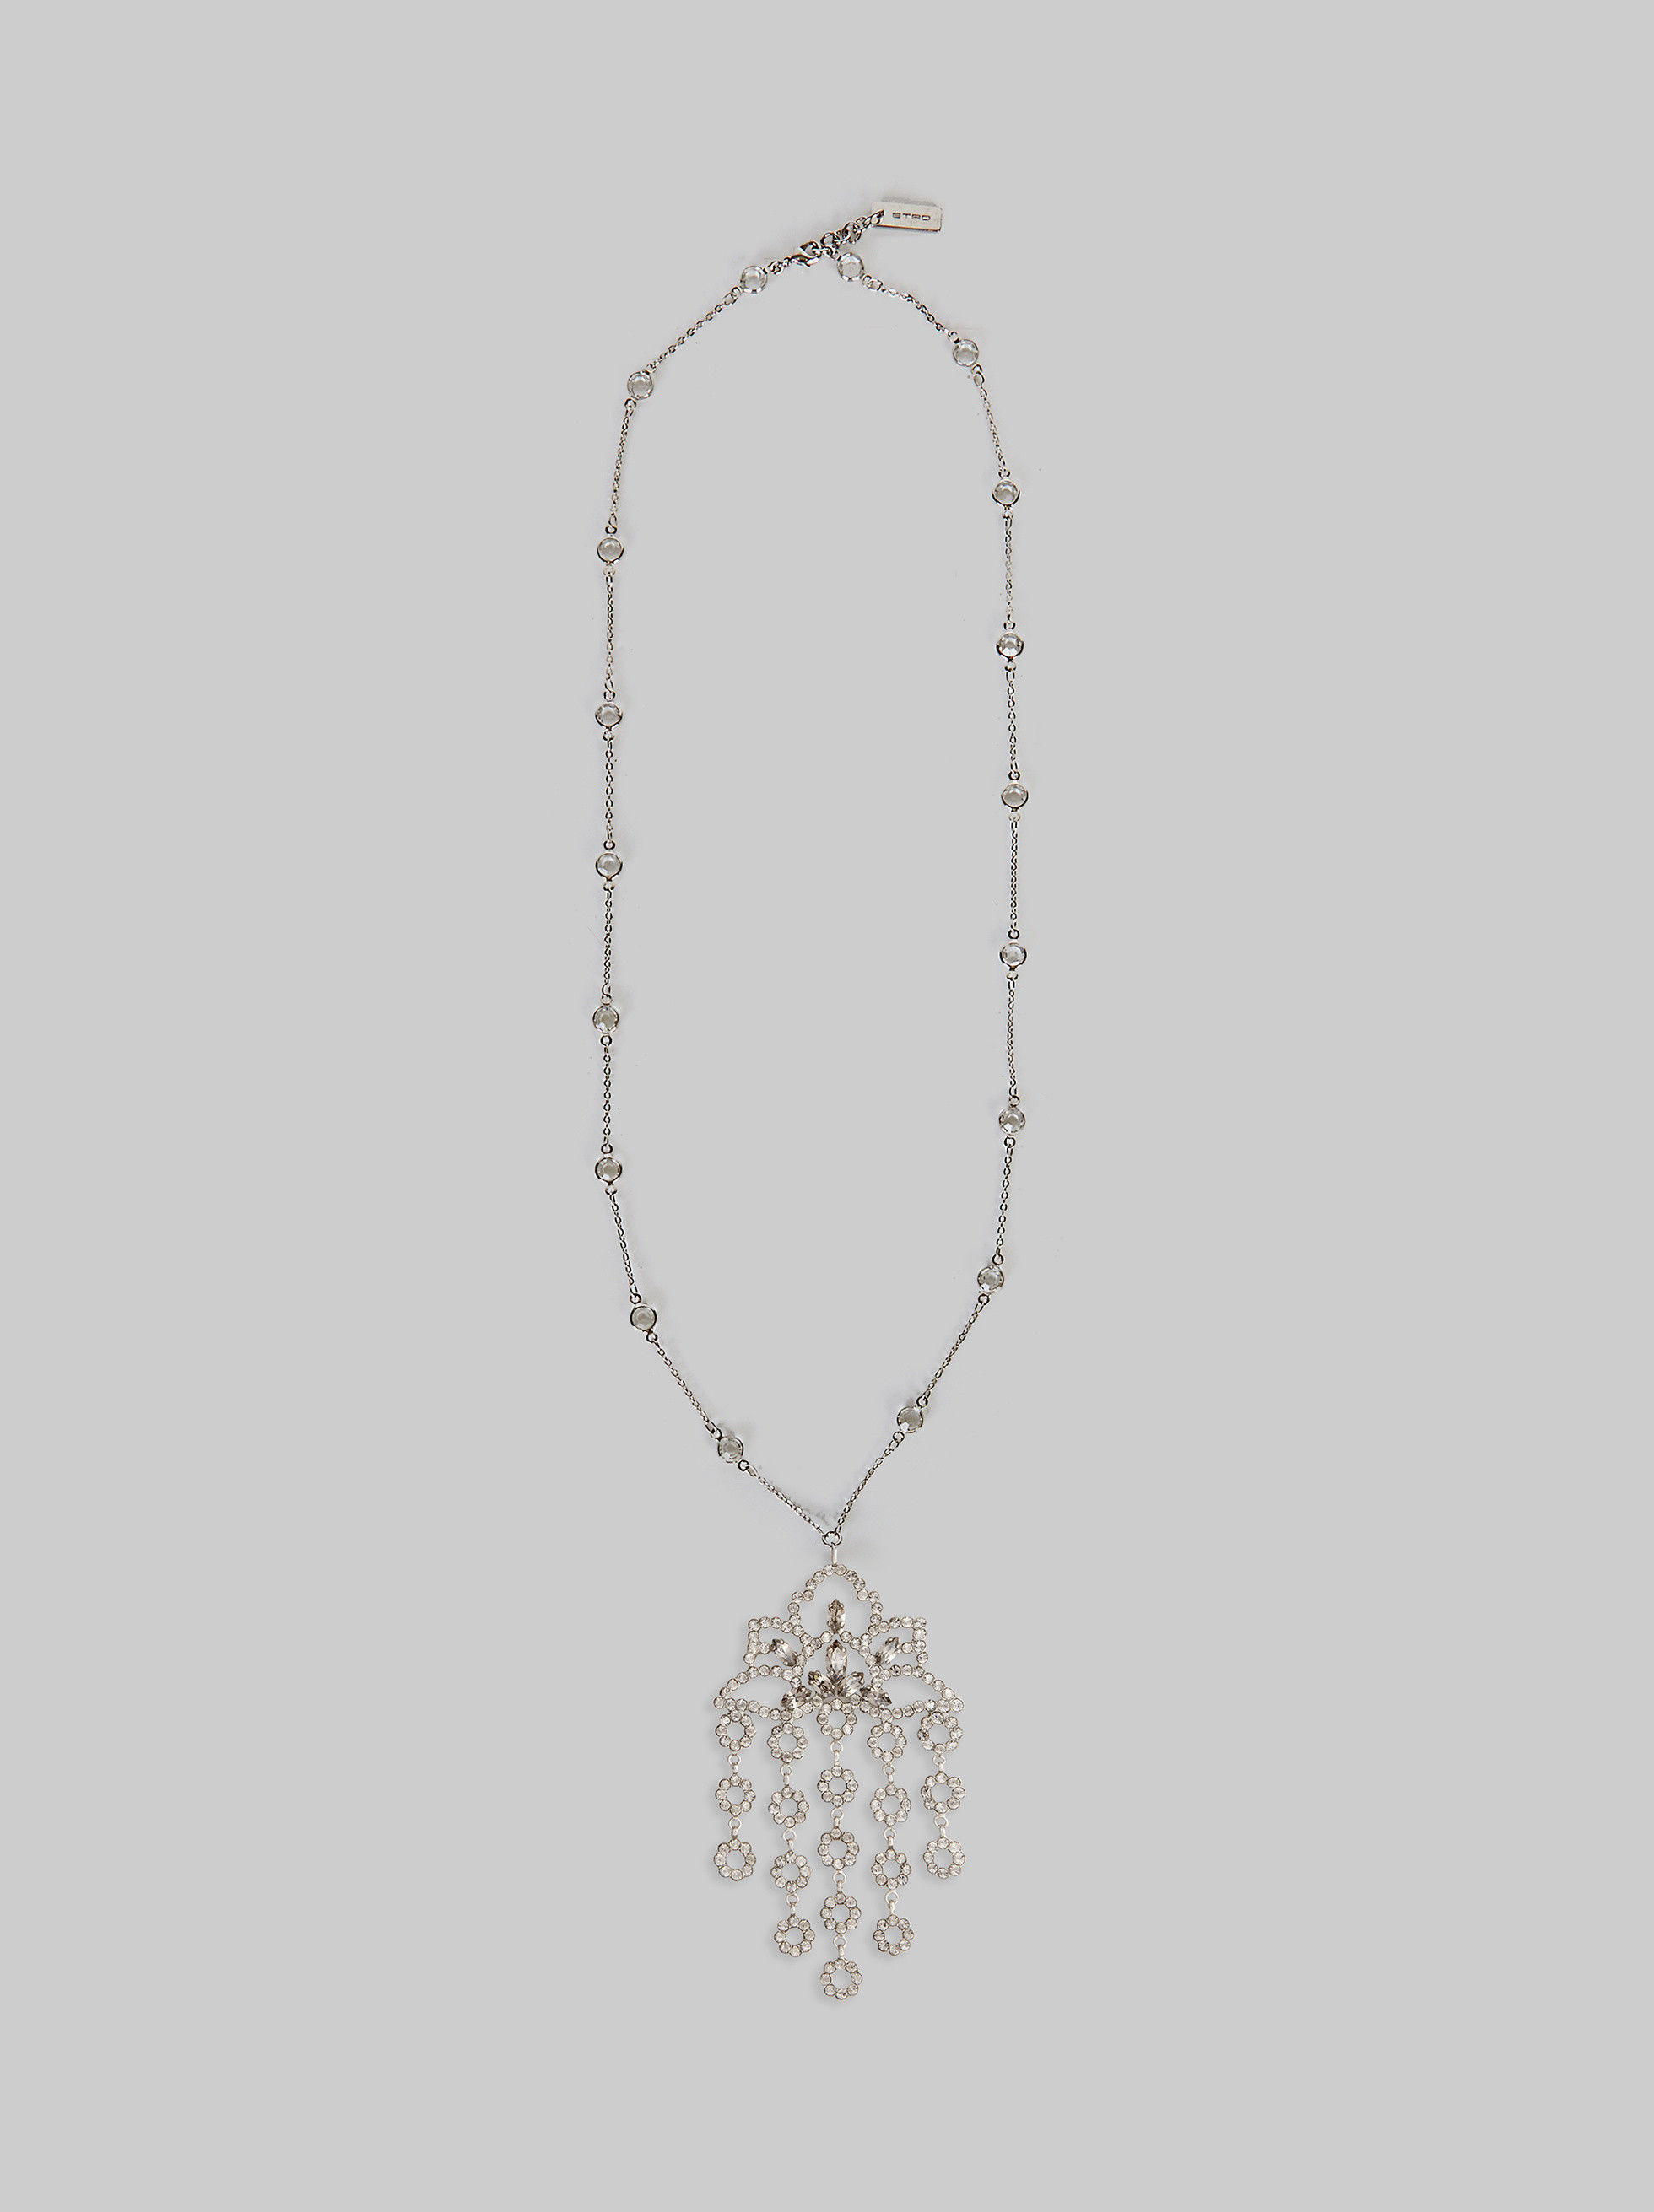 NECKLACE WITH CHANDELIER PENDANT